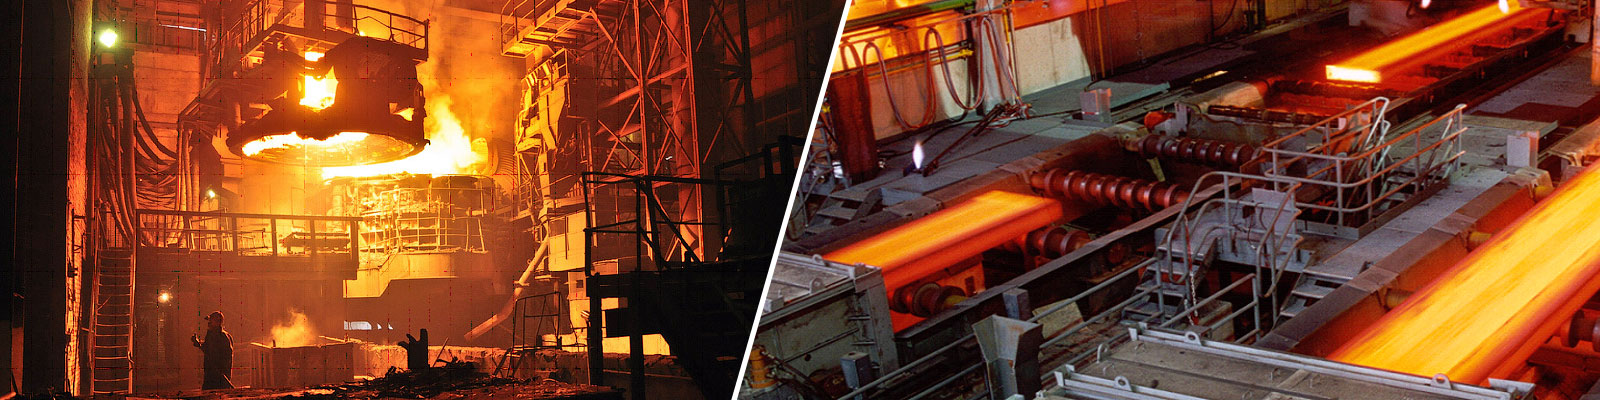 Metallurgical & Materials Engineering | Government College of